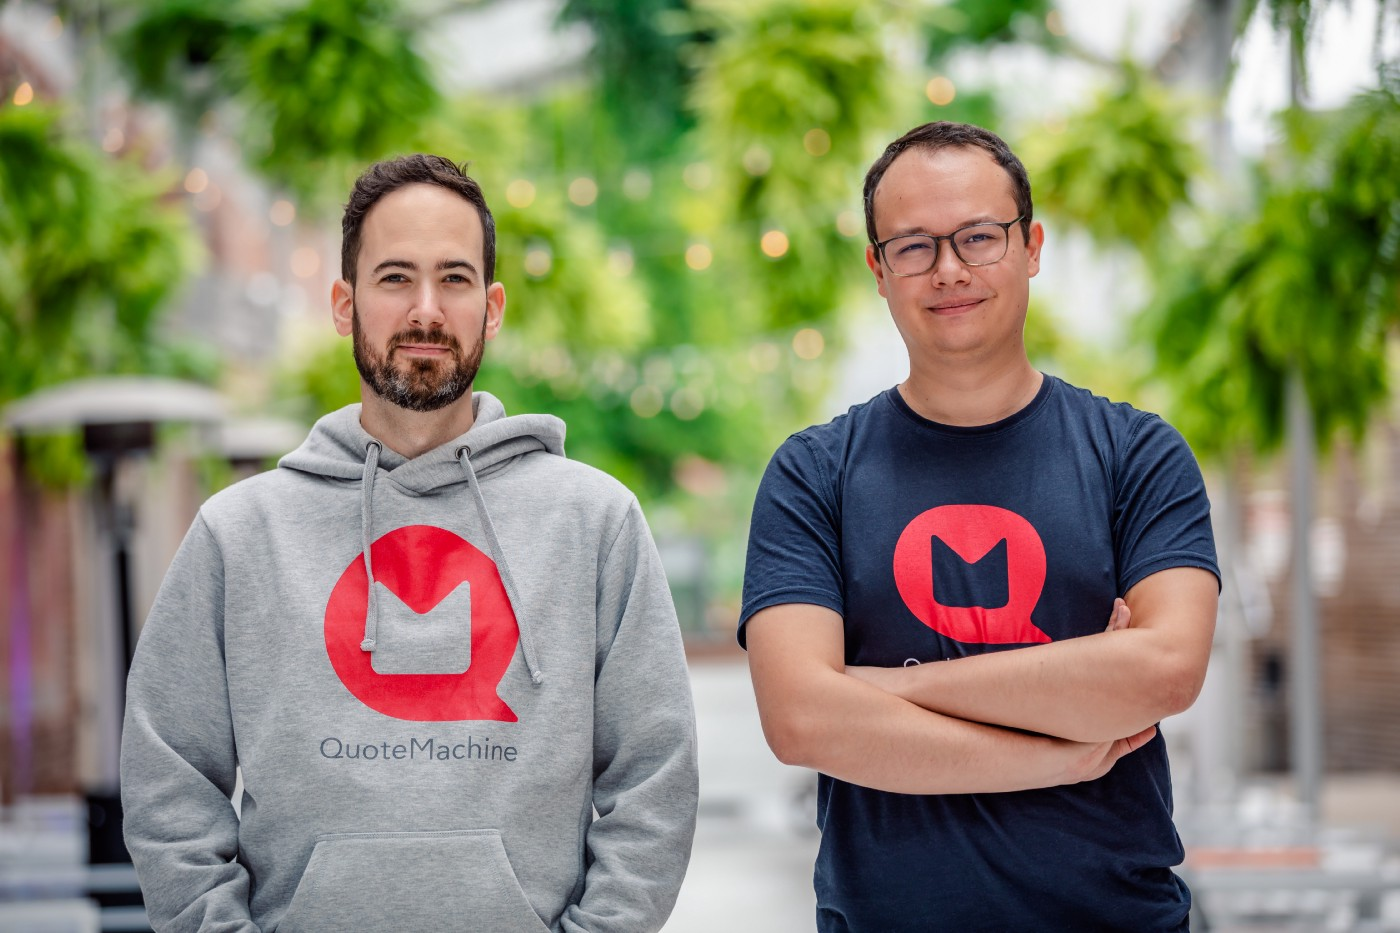 JD Rocheteau and Jonathan Muschalle, cofounder of QuoteMachine Photo credit: Tora Photography